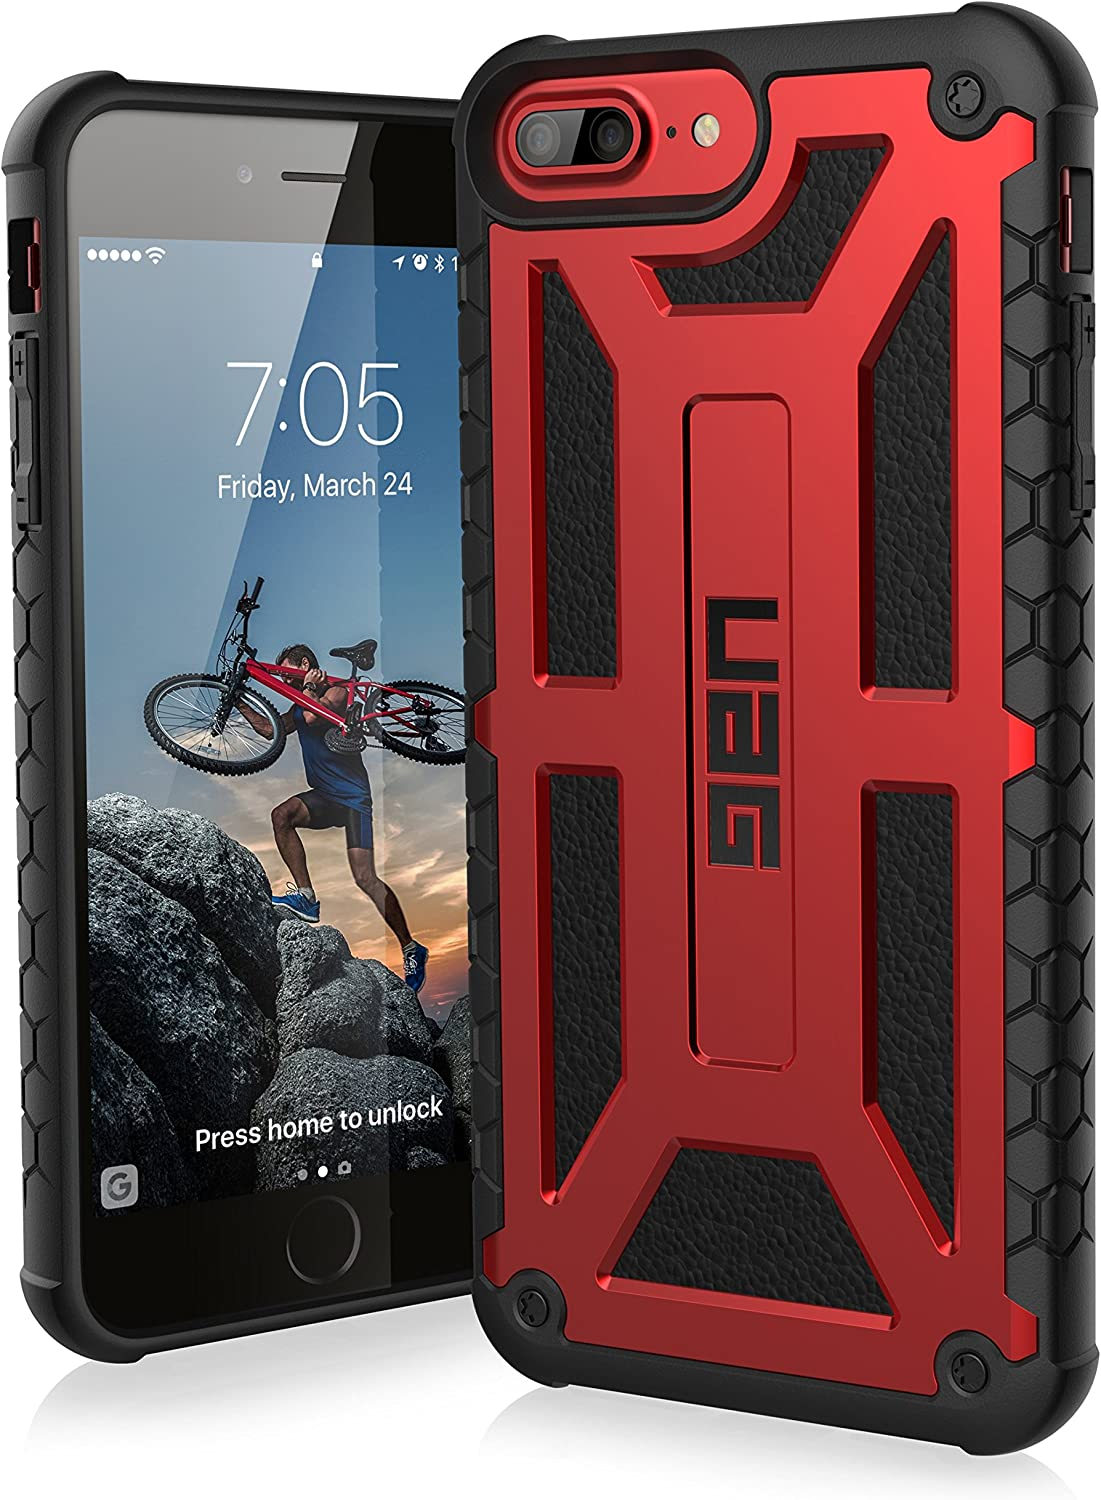 URBAN ARMOR GEAR UAG iPhone 8 Plus/iPhone 7 Plus/iPhone 6s Plus [5.5-inch Screen] Monarch Feather-Light Rugged [Crimson] Military Drop Tested iPhone Case